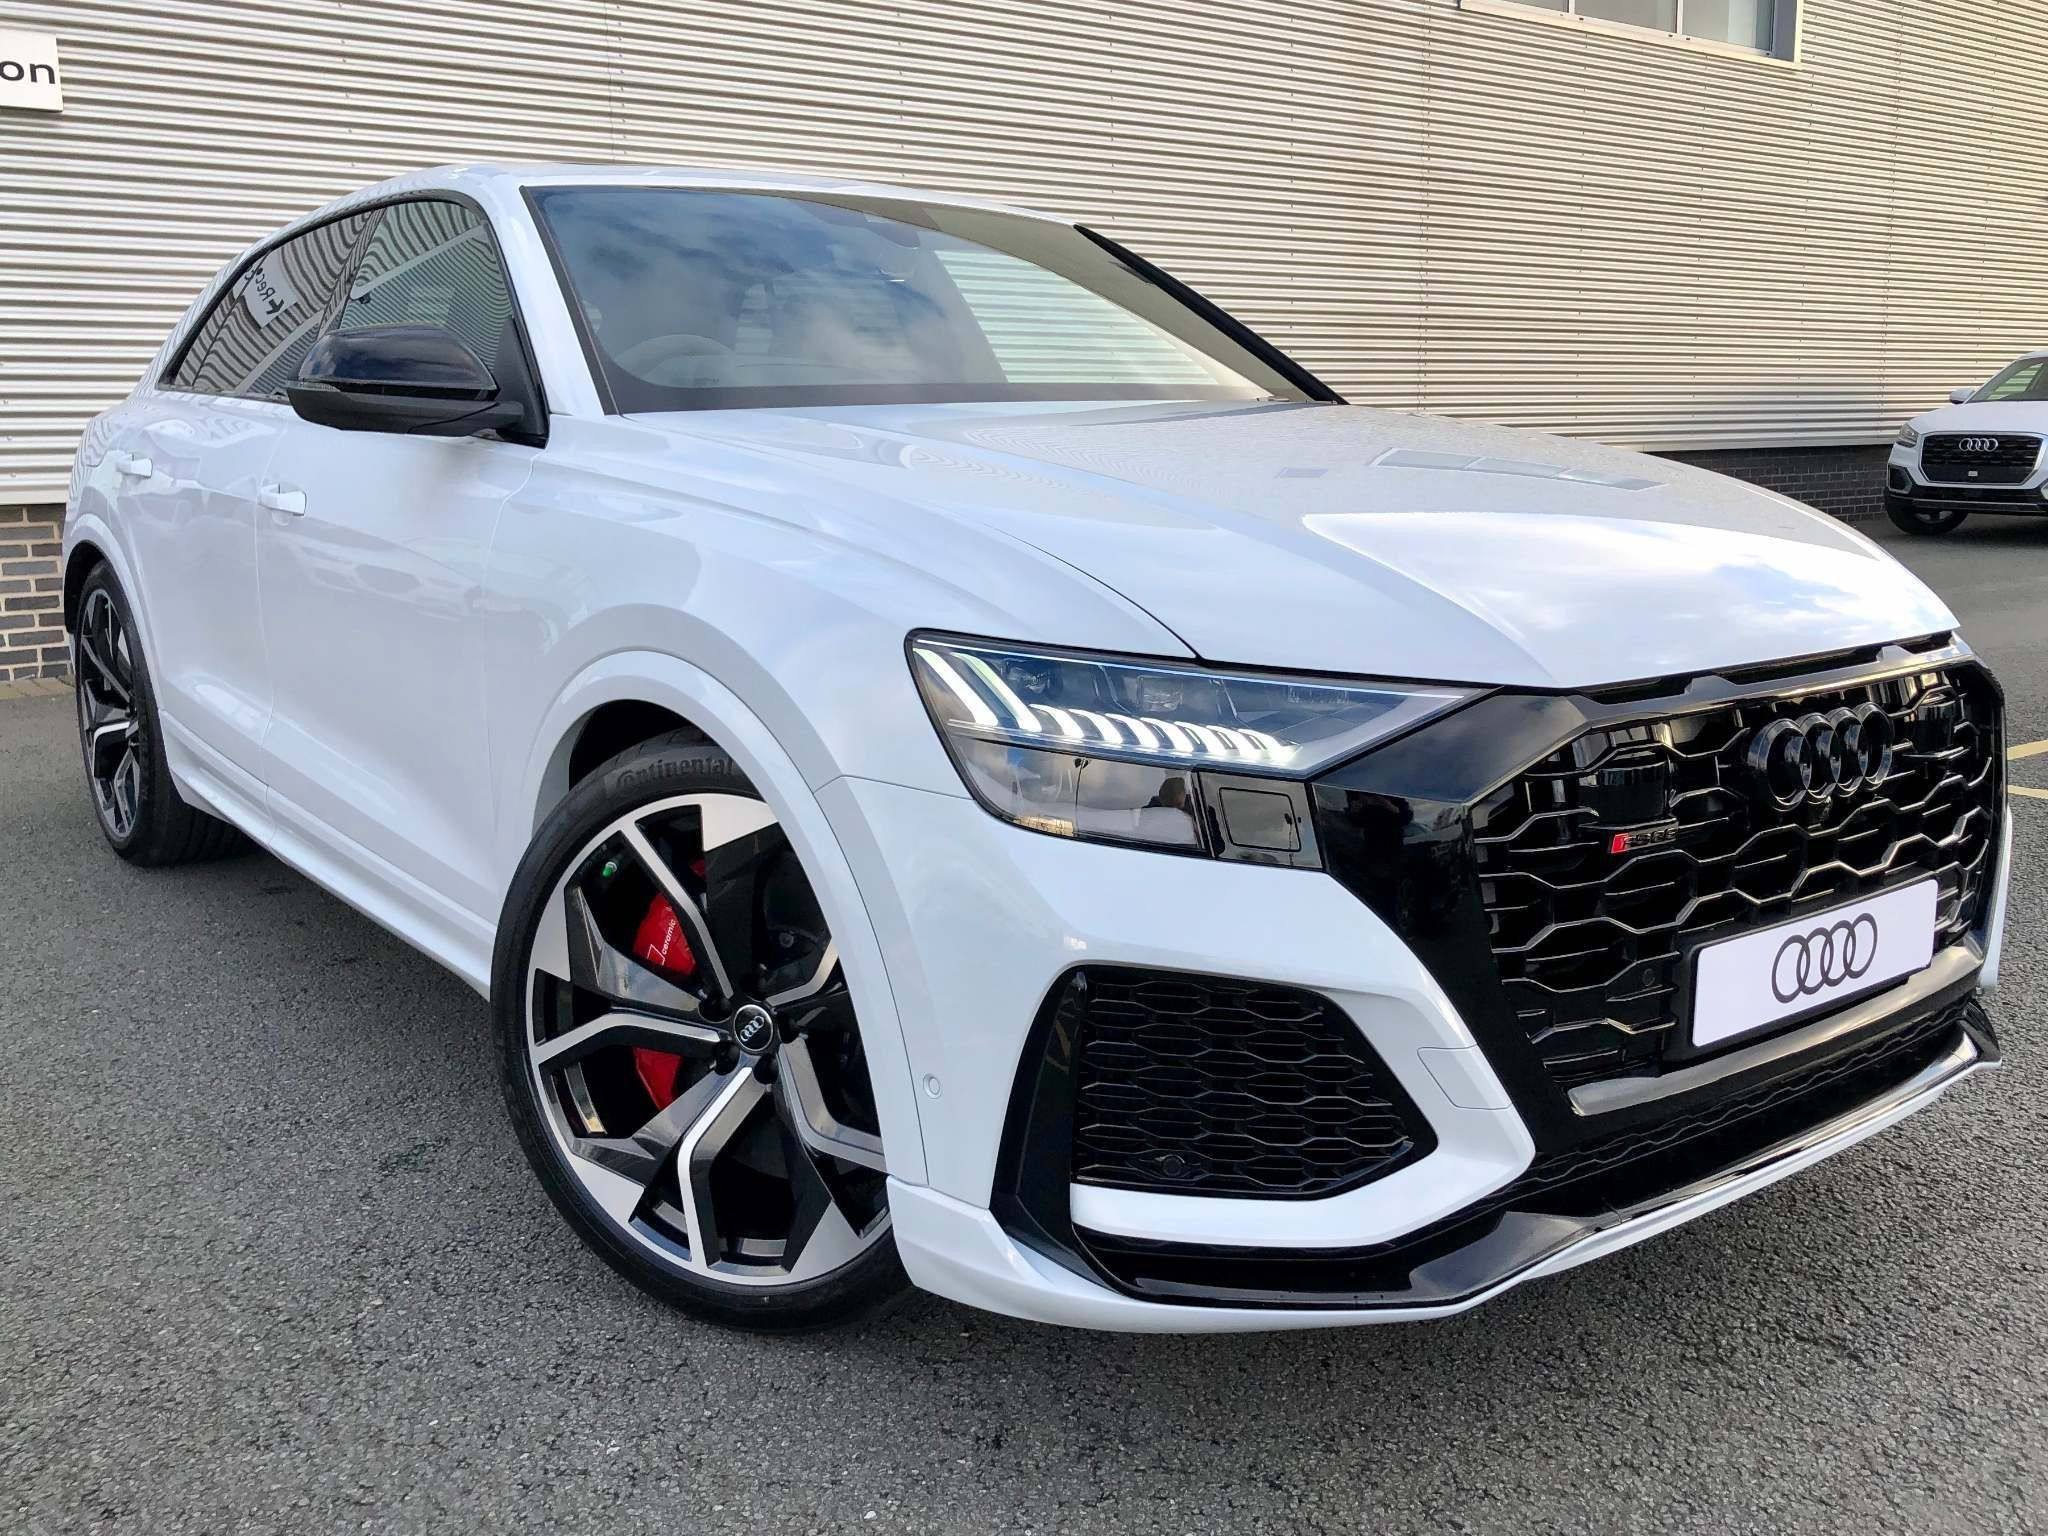 Audi Rsq8 4 0 Tfsi V8 Tiptronic Quattro S S 5dr For Sale In 2020 Audi Car Dealership Used Audi